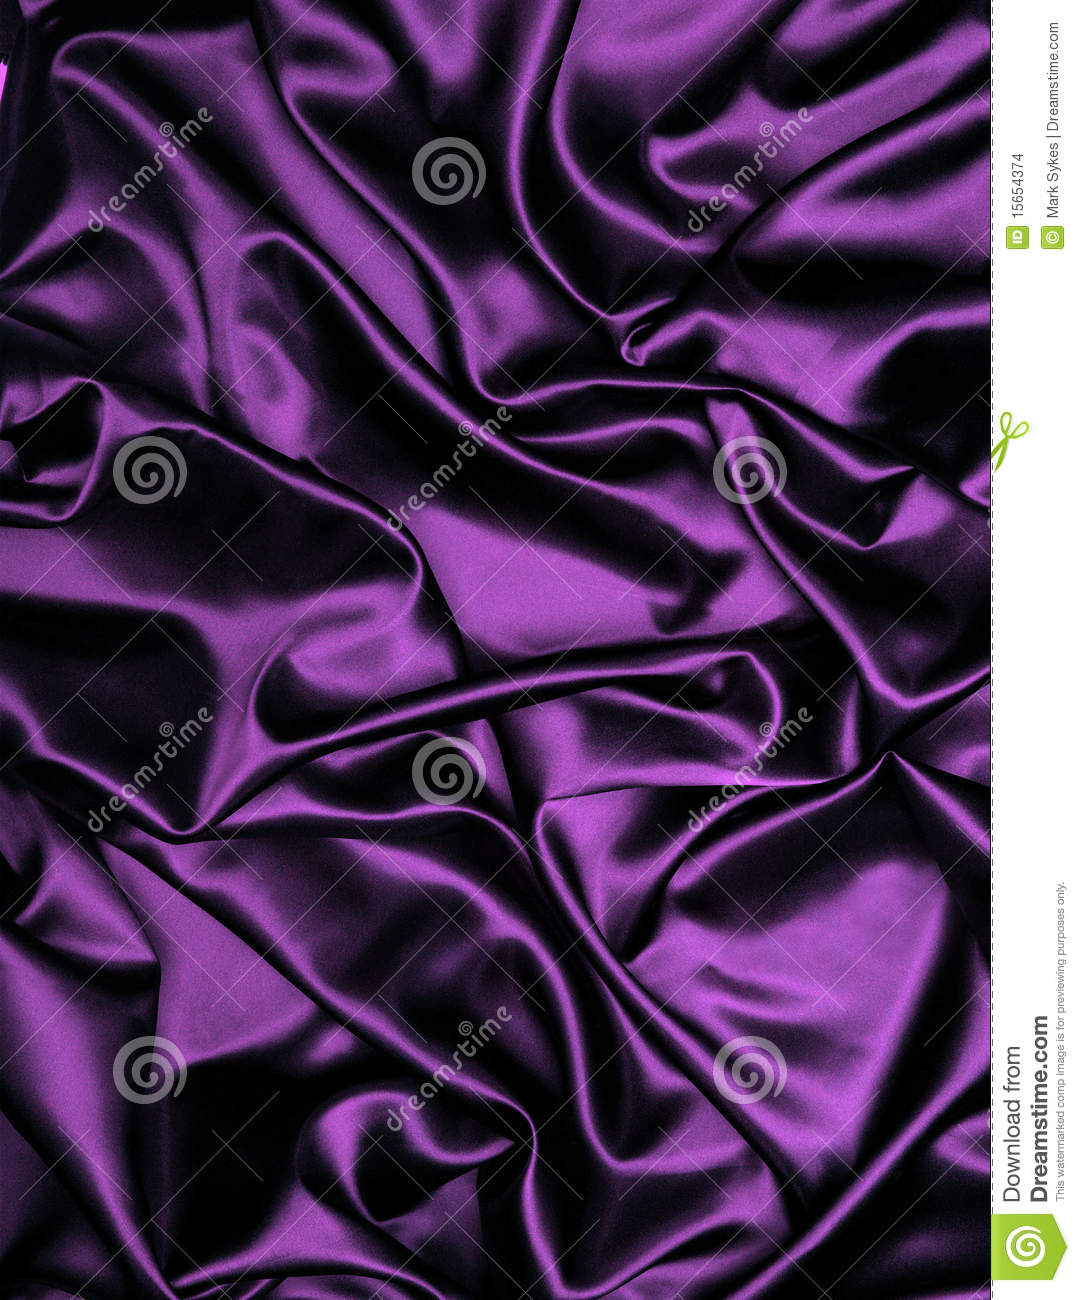 Bettwaesche Clipart Purple Satin Fabric Background Stock Images Image 15654374